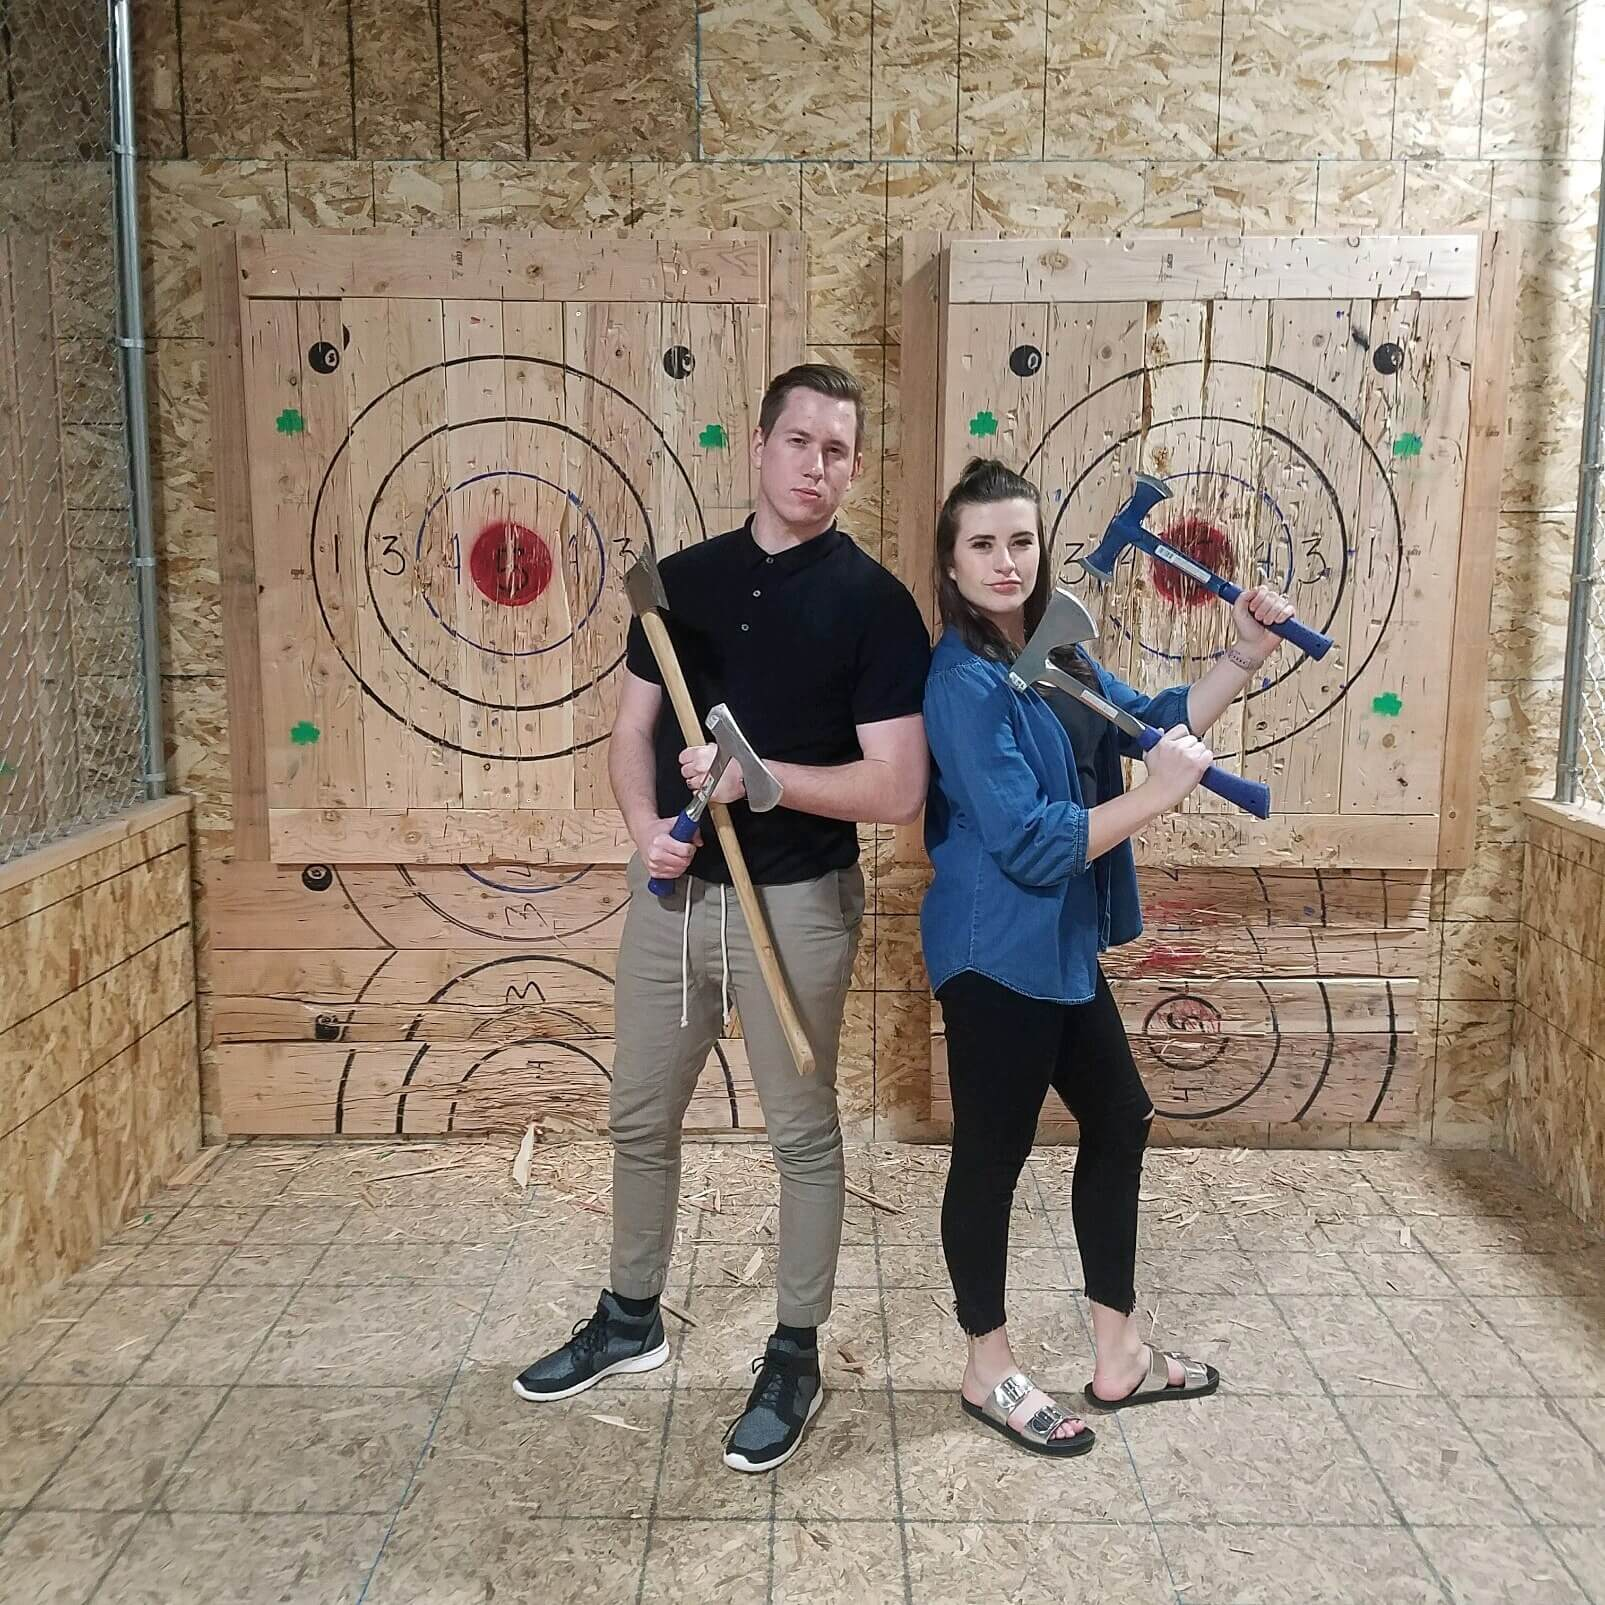 Why Axe Throwing is a Great Date Activity